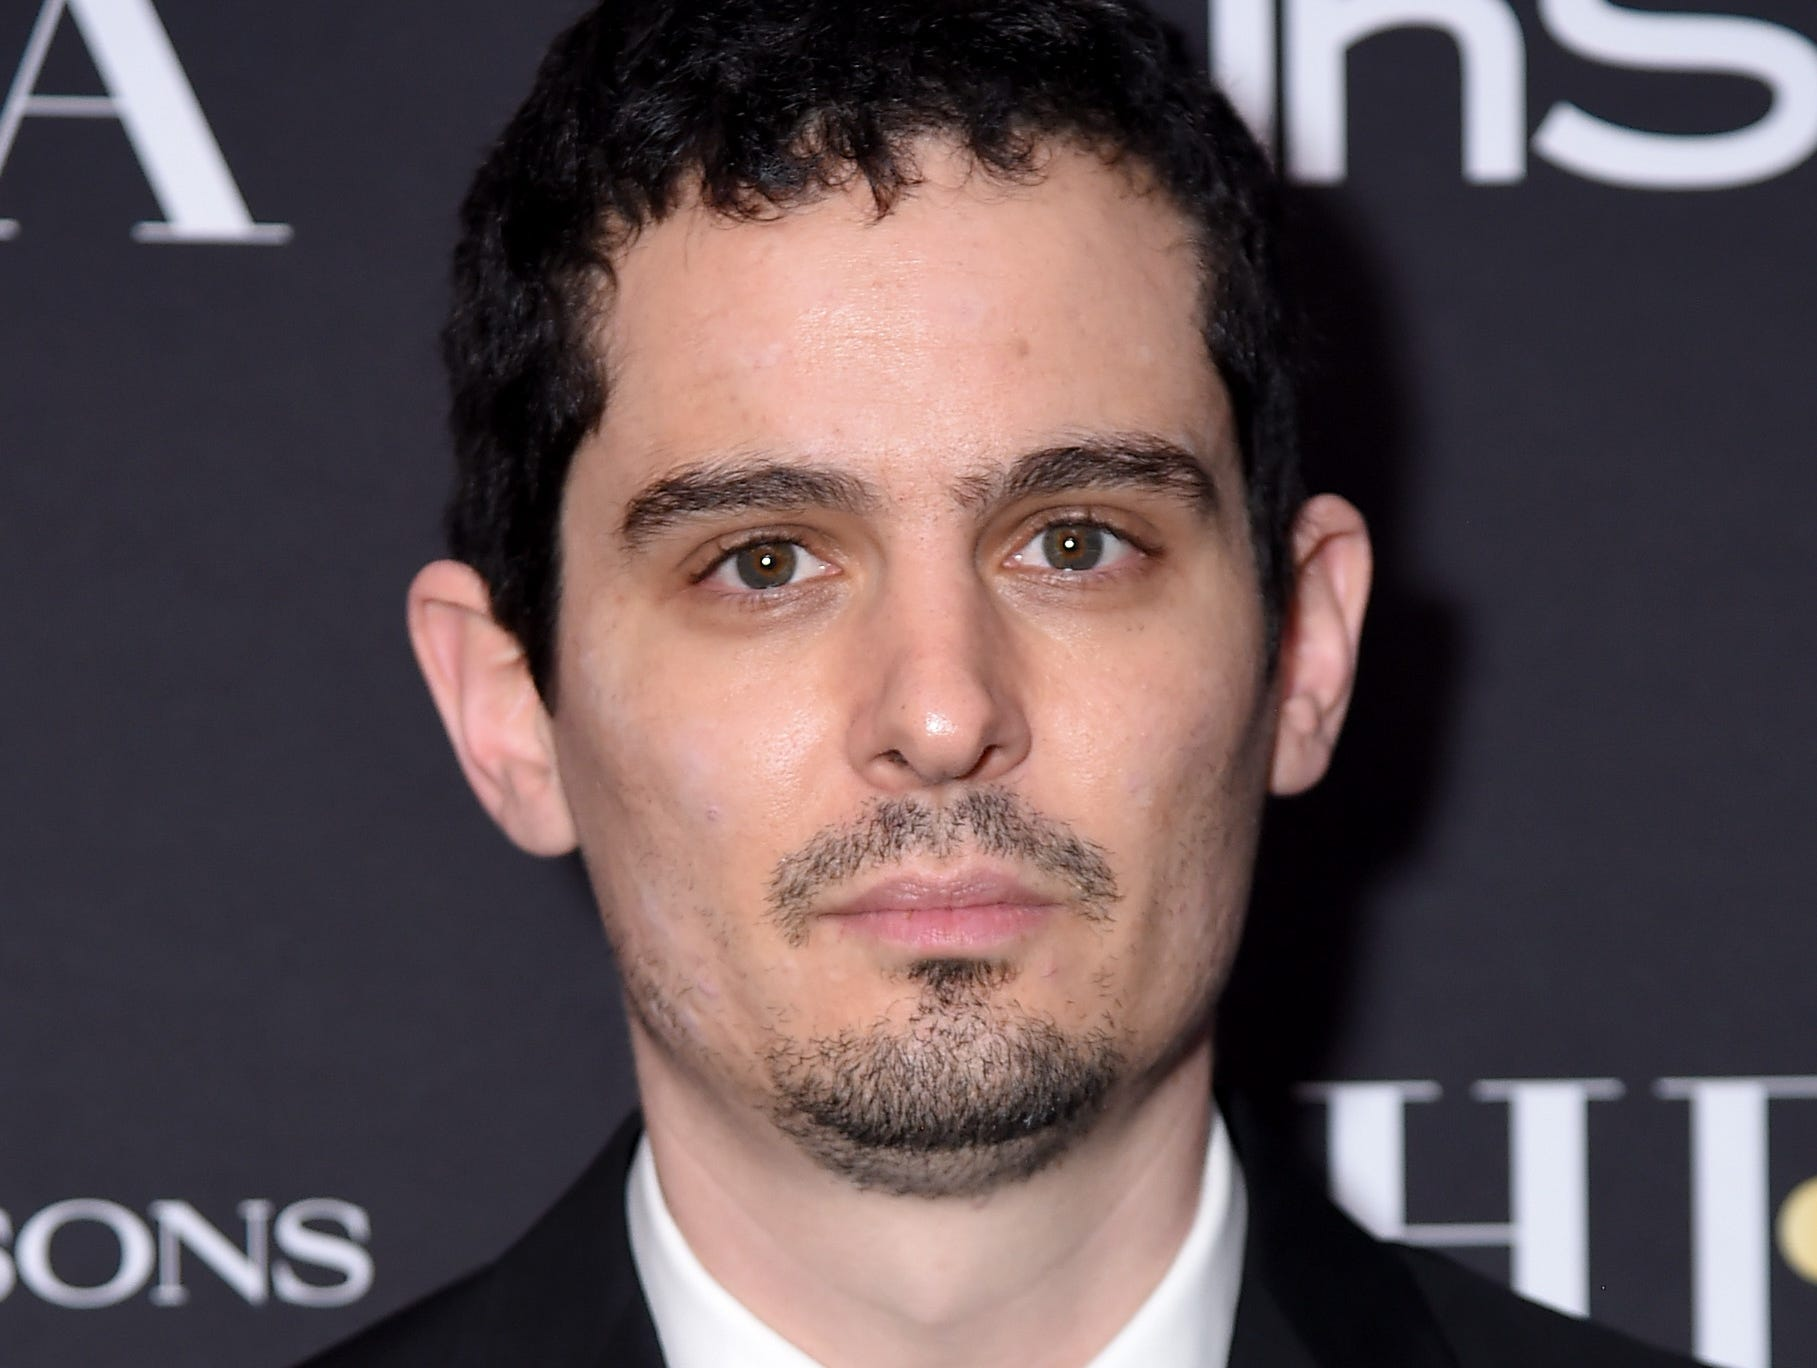 TORONTO, ON - SEPTEMBER 08:  Damien Chazelle attends The Hollywood Foreign Press Association and InStyle Party during 2018 Toronto International Film Festival at Four Seasons Hotel on September 8, 2018 in Toronto, Canada.  (Photo by Michael Loccisano/Getty Images,) ORG XMIT: 775218497 ORIG FILE ID: 1029584988